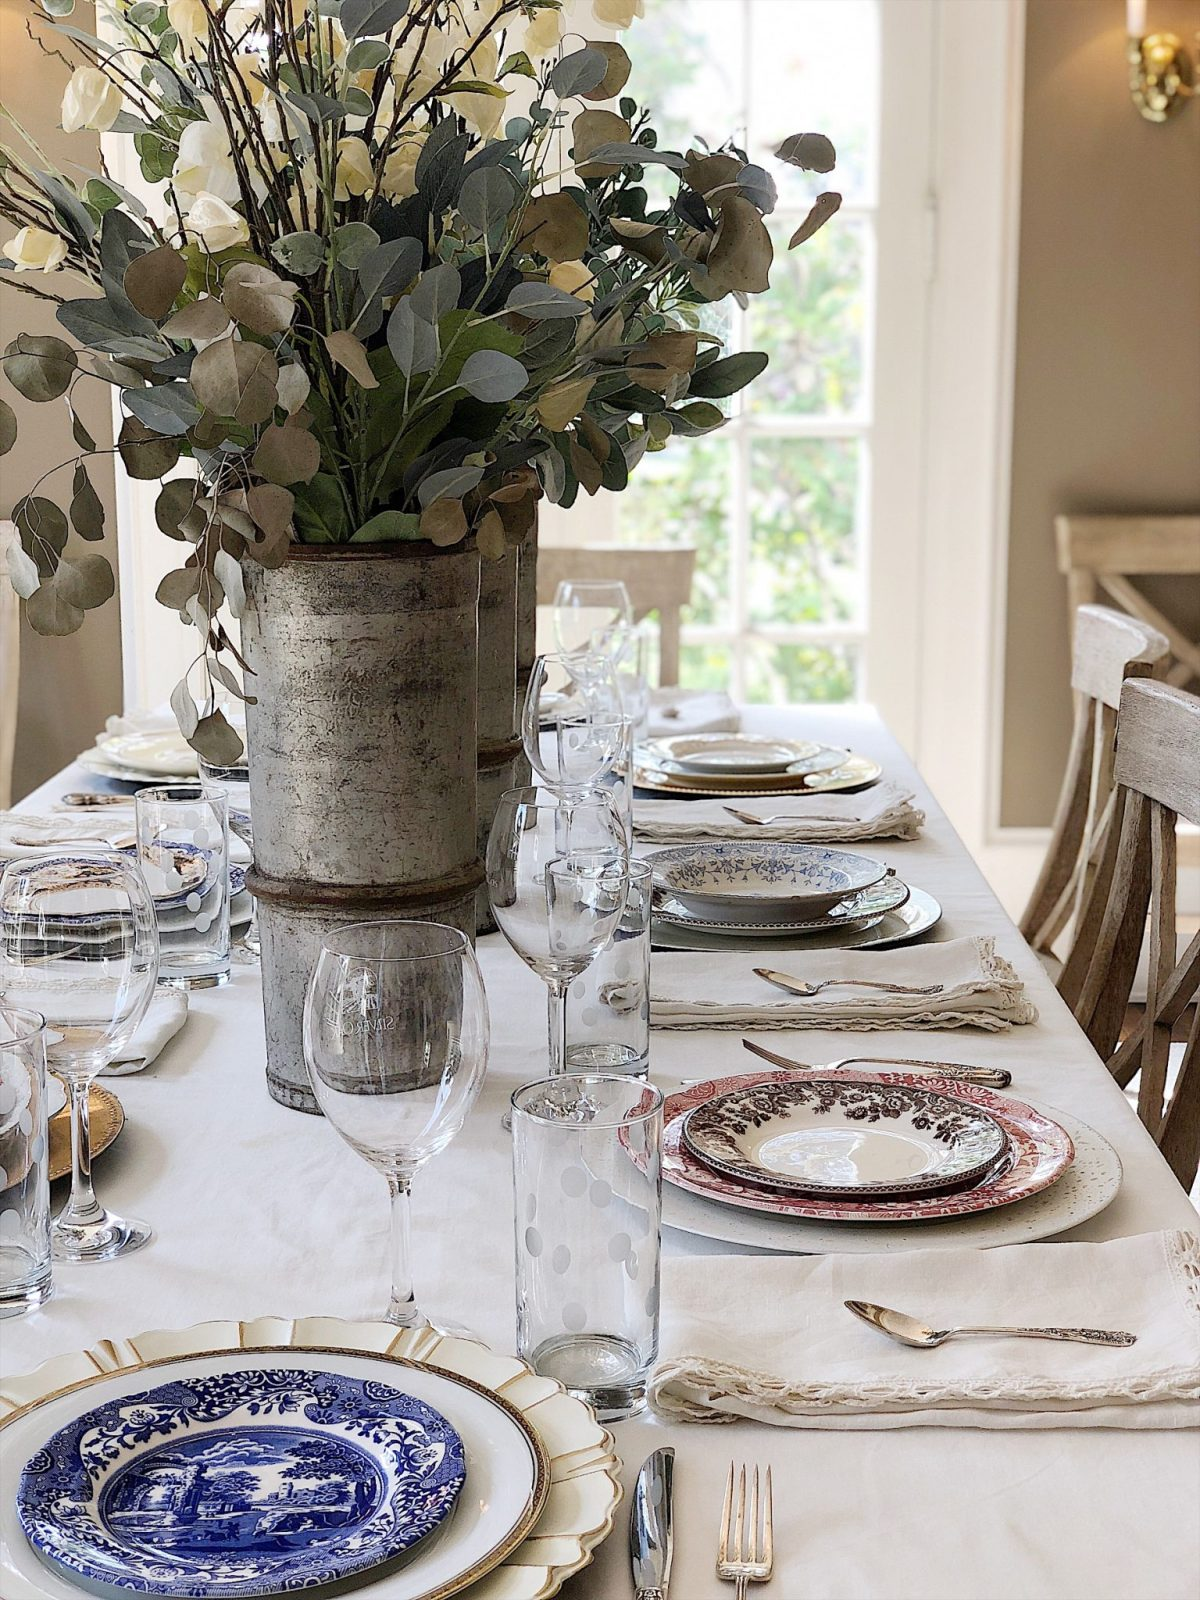 setting the table with fine china